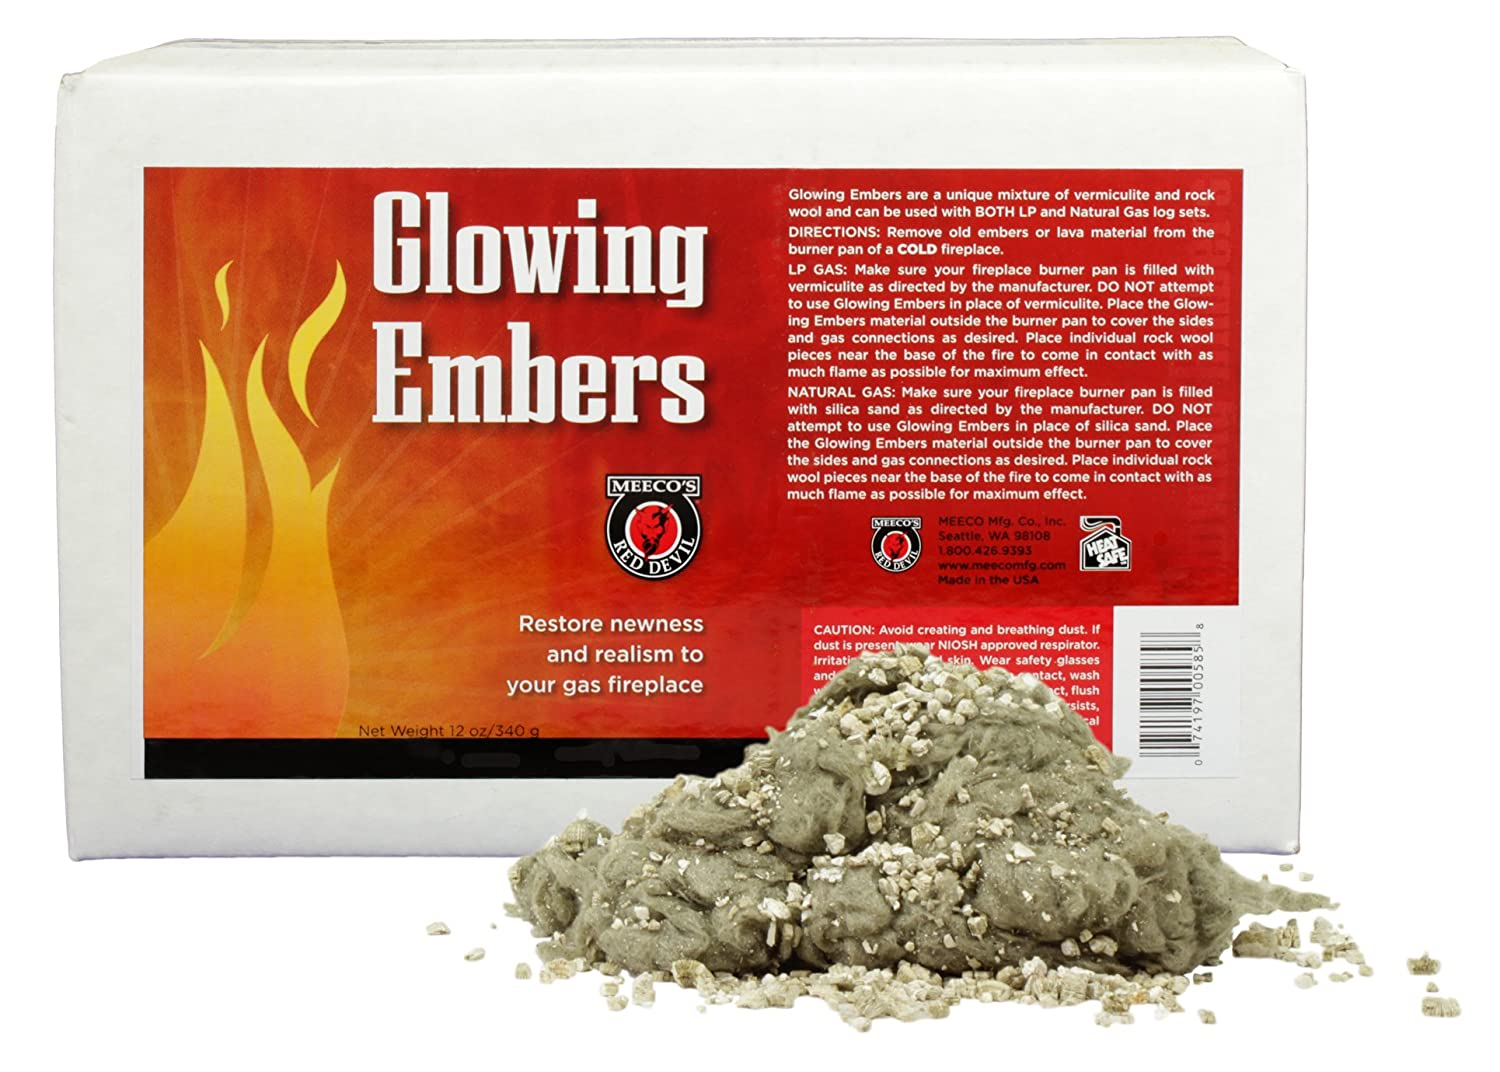 amazon com meeco s red devil 585 glowing embers 12 oz home rh amazon com What Are Fireplace Embers glowing embers for vented gas fireplace